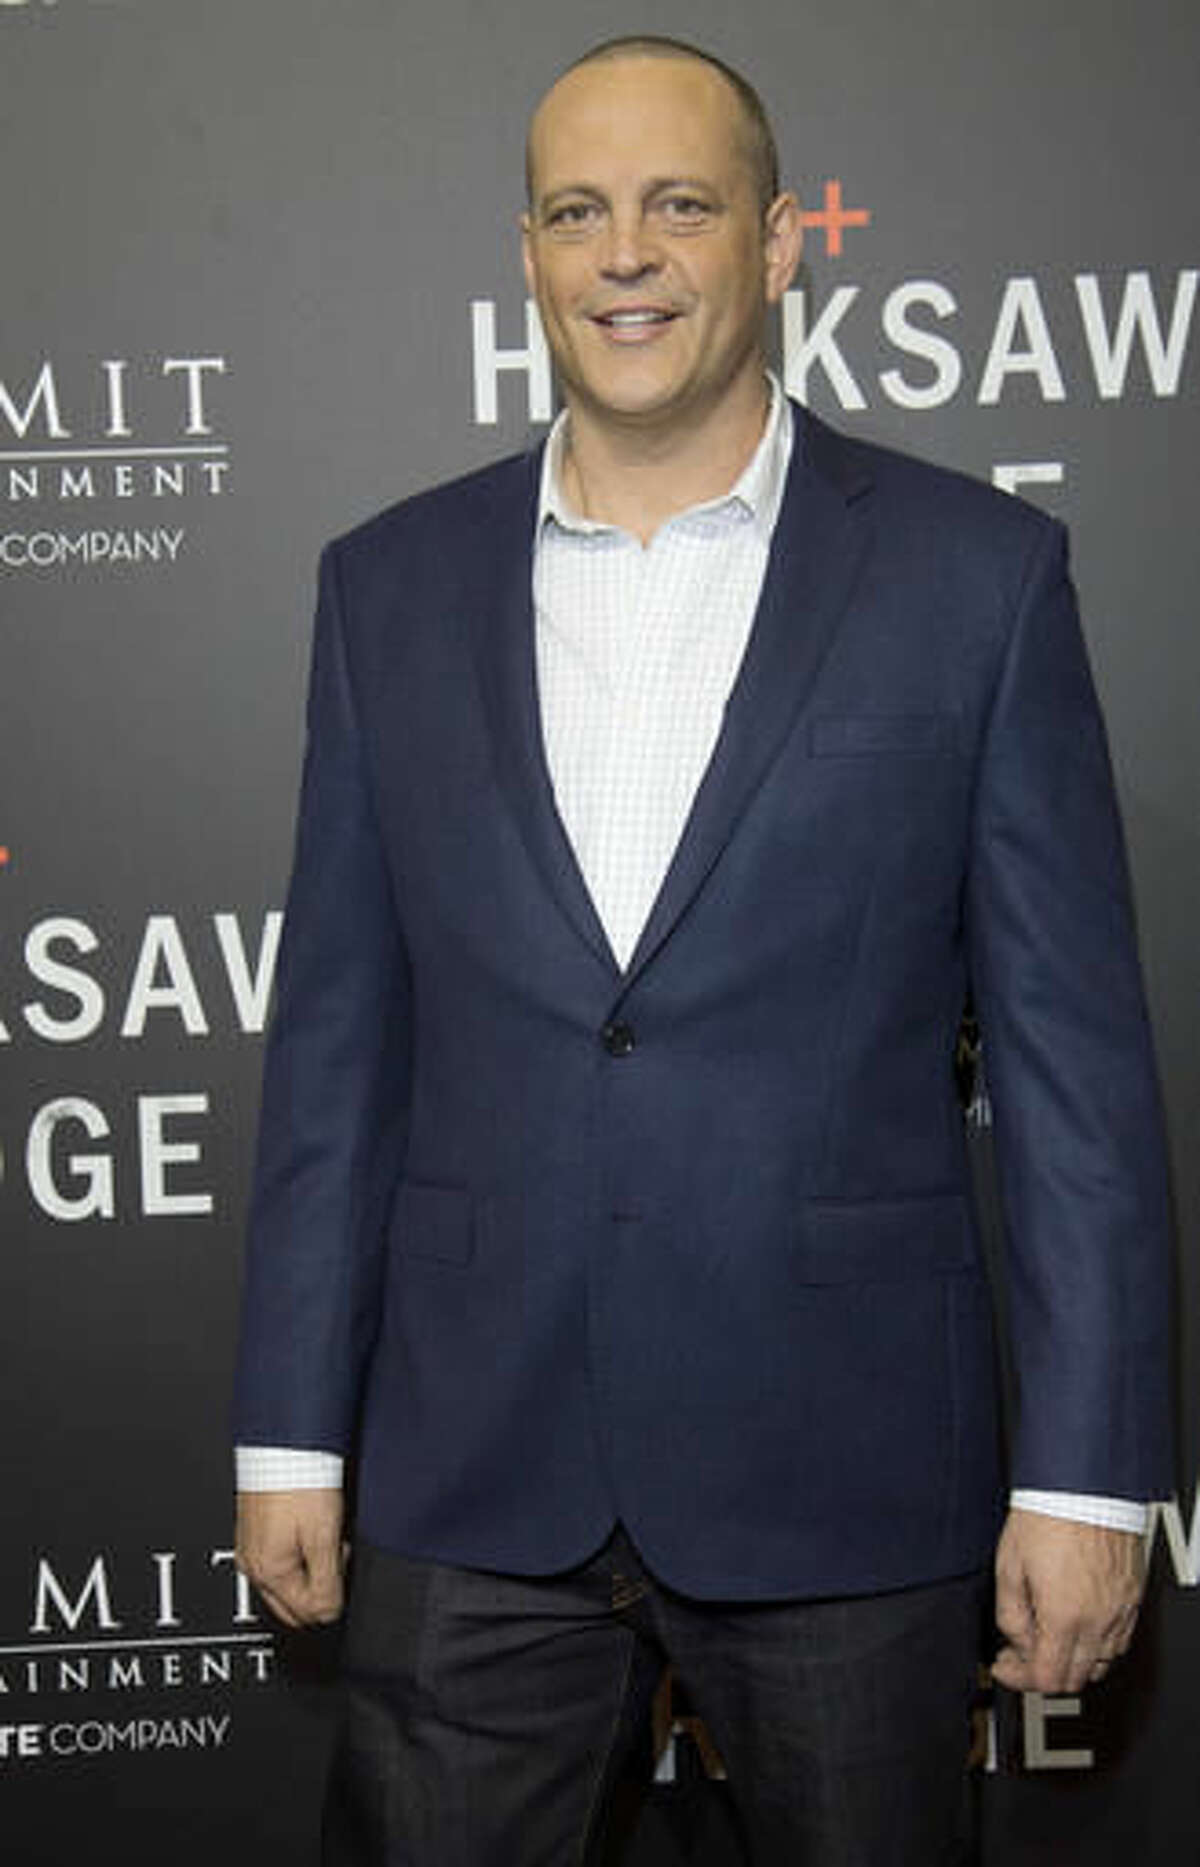 """Actor Vince Vaughn poses on the red carpet for the premier of the movie """"Hacksaw Ridge"""" at The National WWII Museum, in New Orleans, Wednesday, Oct. 26, 2016. The film depicts the life of World War II medic and Congressional Medal of Honor recipient Desmond Doss. (AP Photo/Max Becherer)"""